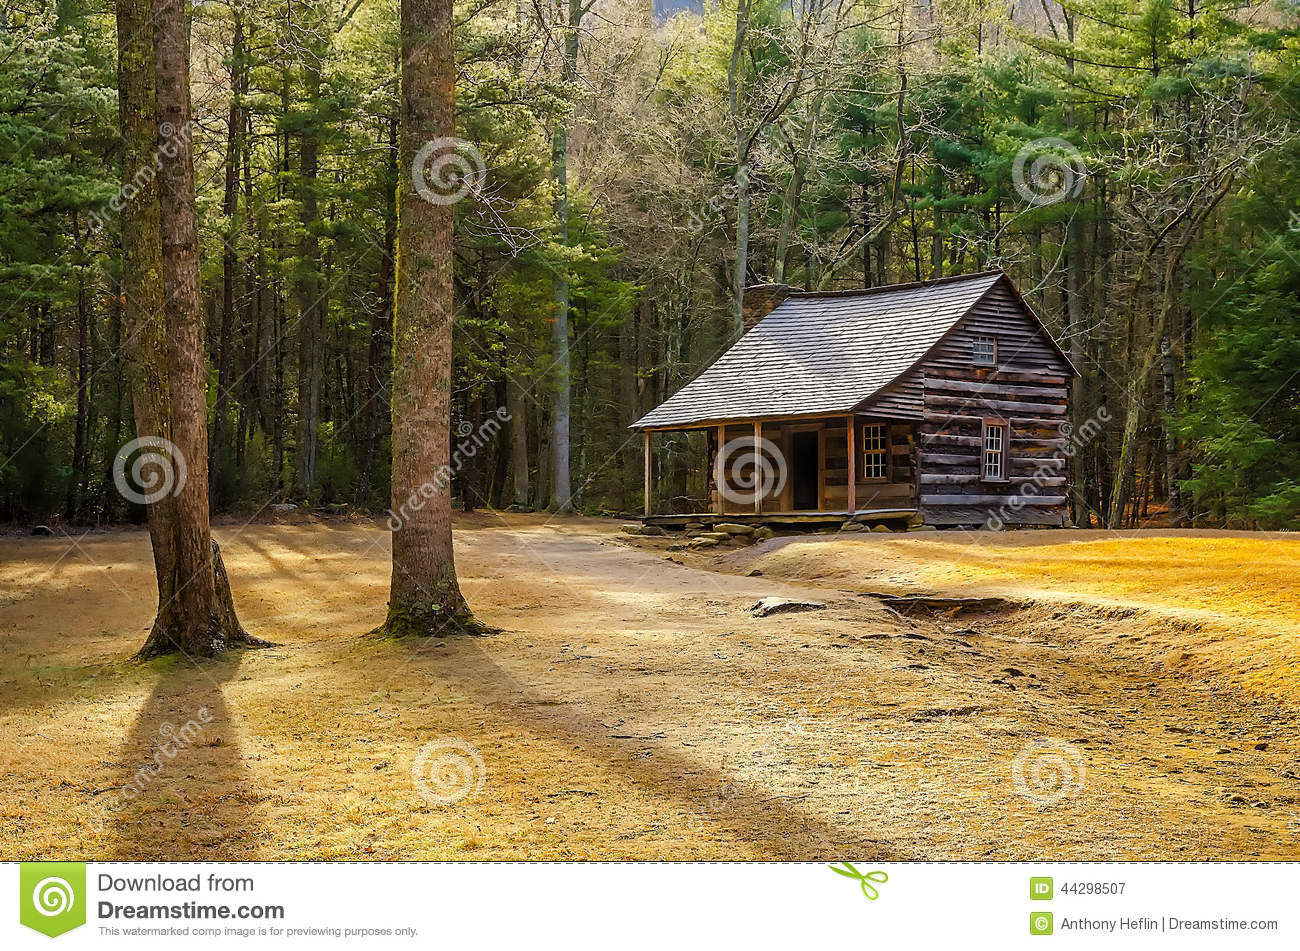 Carter Shields Cabin, Great Smoky Mountains